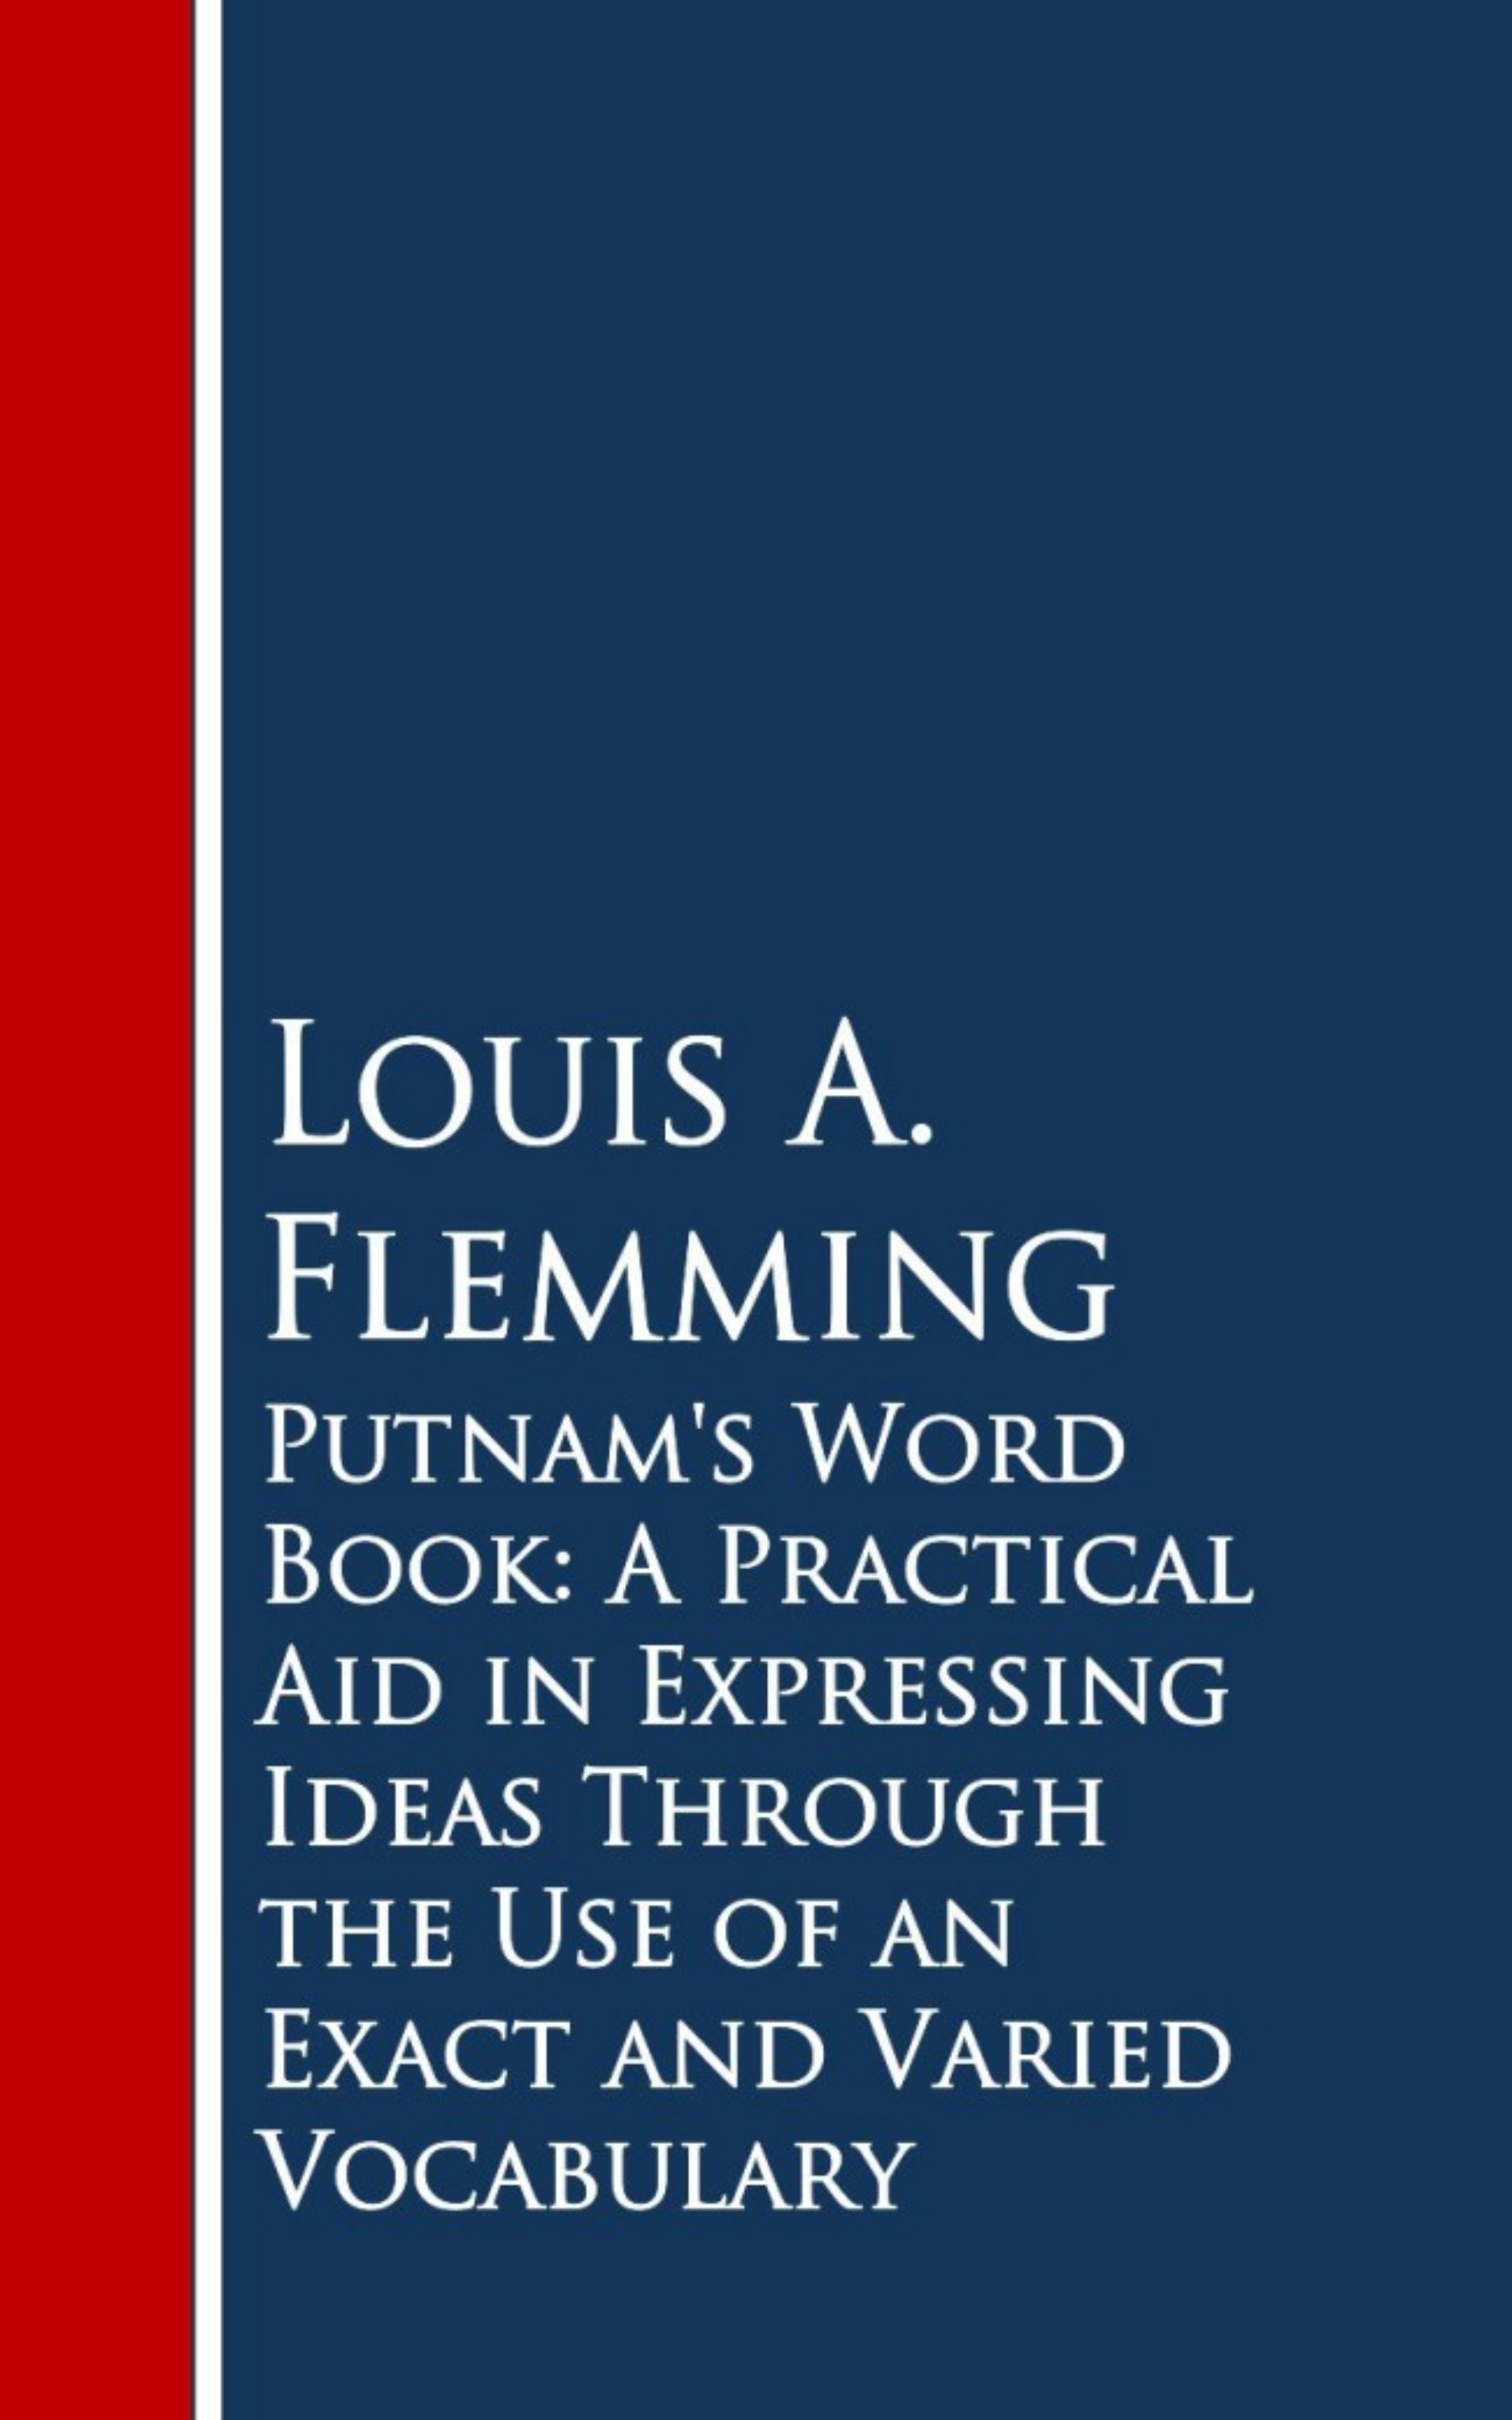 Louis A. Flemming Putnam's Word Book: A Practical Aid in Expressing Ideas Through the Use of an Exact and Varied Vocabulary flemming dalum pres zyx italo disco in the mix